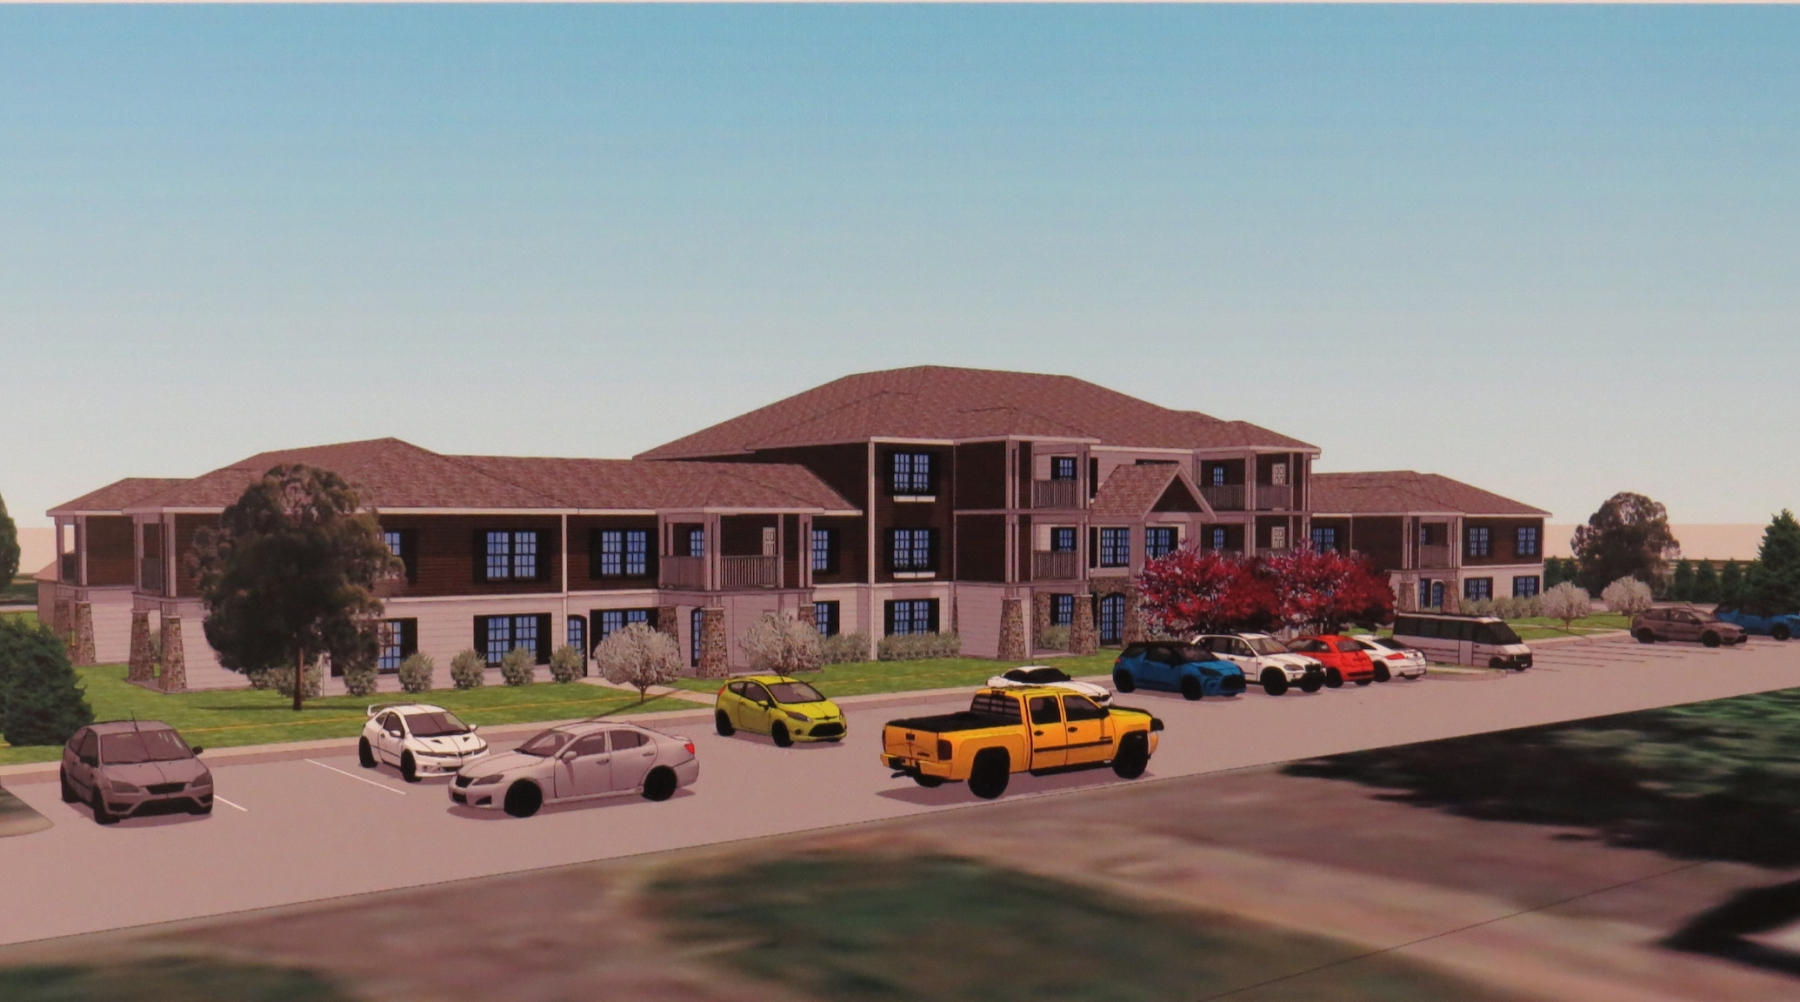 Pictured is Jimmy Jerge's vision for the former Fairchild Manor. This is an artist's rendering of the property at 765 Fairchild Place, as shown from the Onondaga Street side.